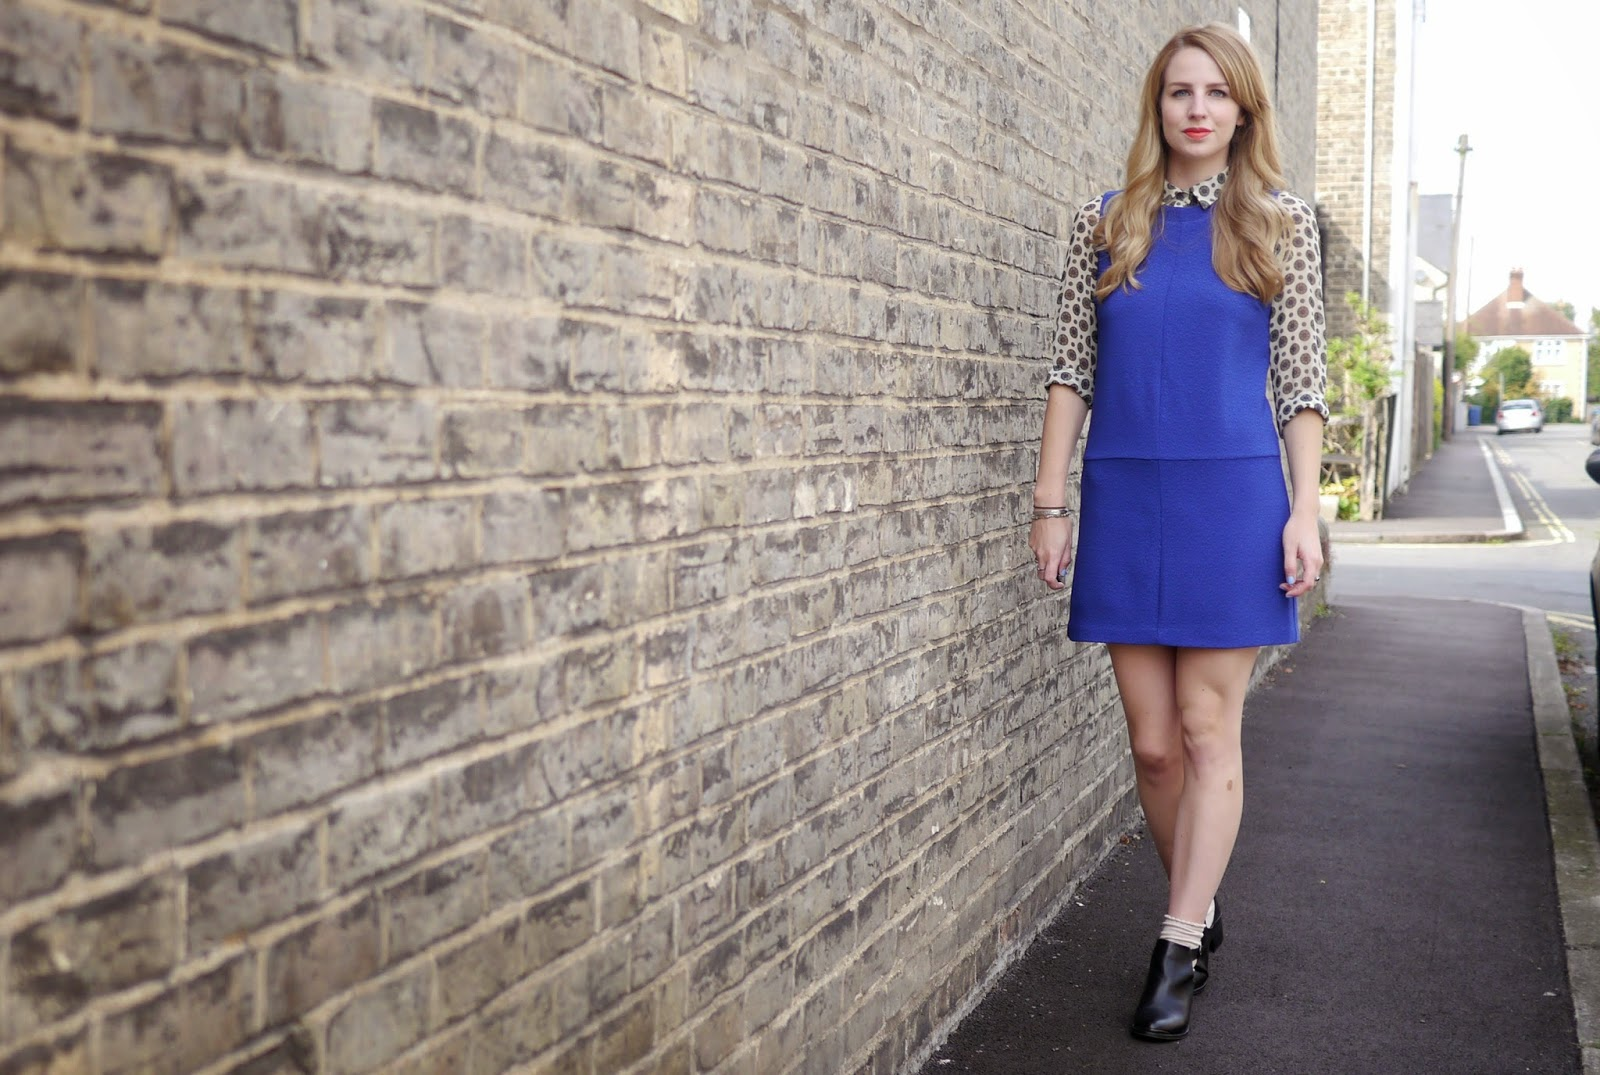 New Look Blue High Neck 60s Shift Dress, Zara Patterned Shirt & Topshop Cut Out Buckle Ankle Boots